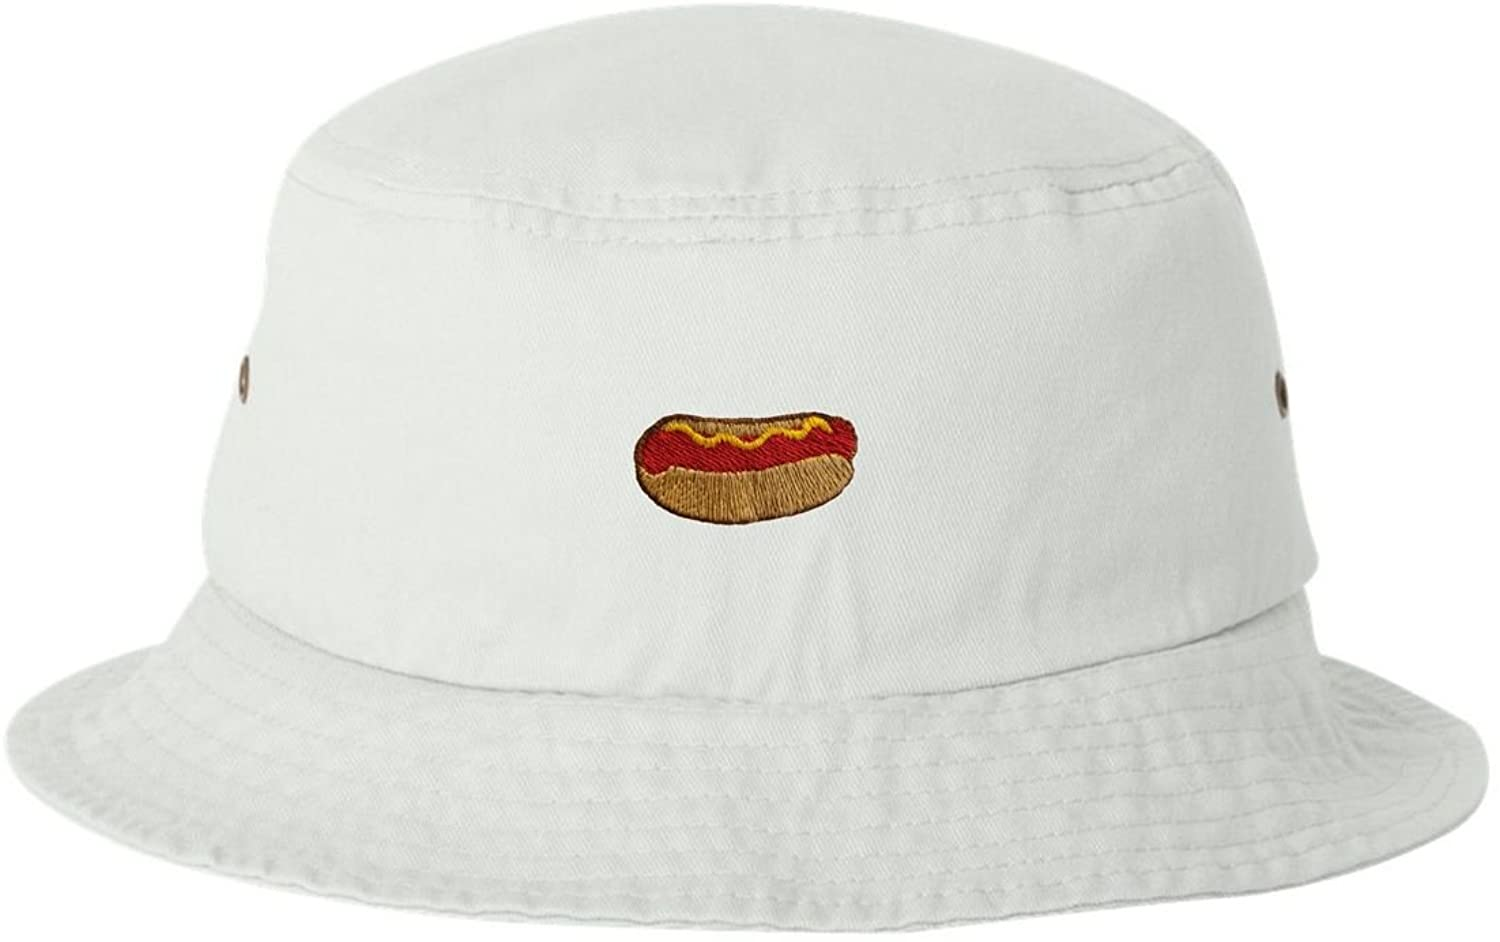 Adult Hot Dog Embroidered Bucket Cap Dad Hat